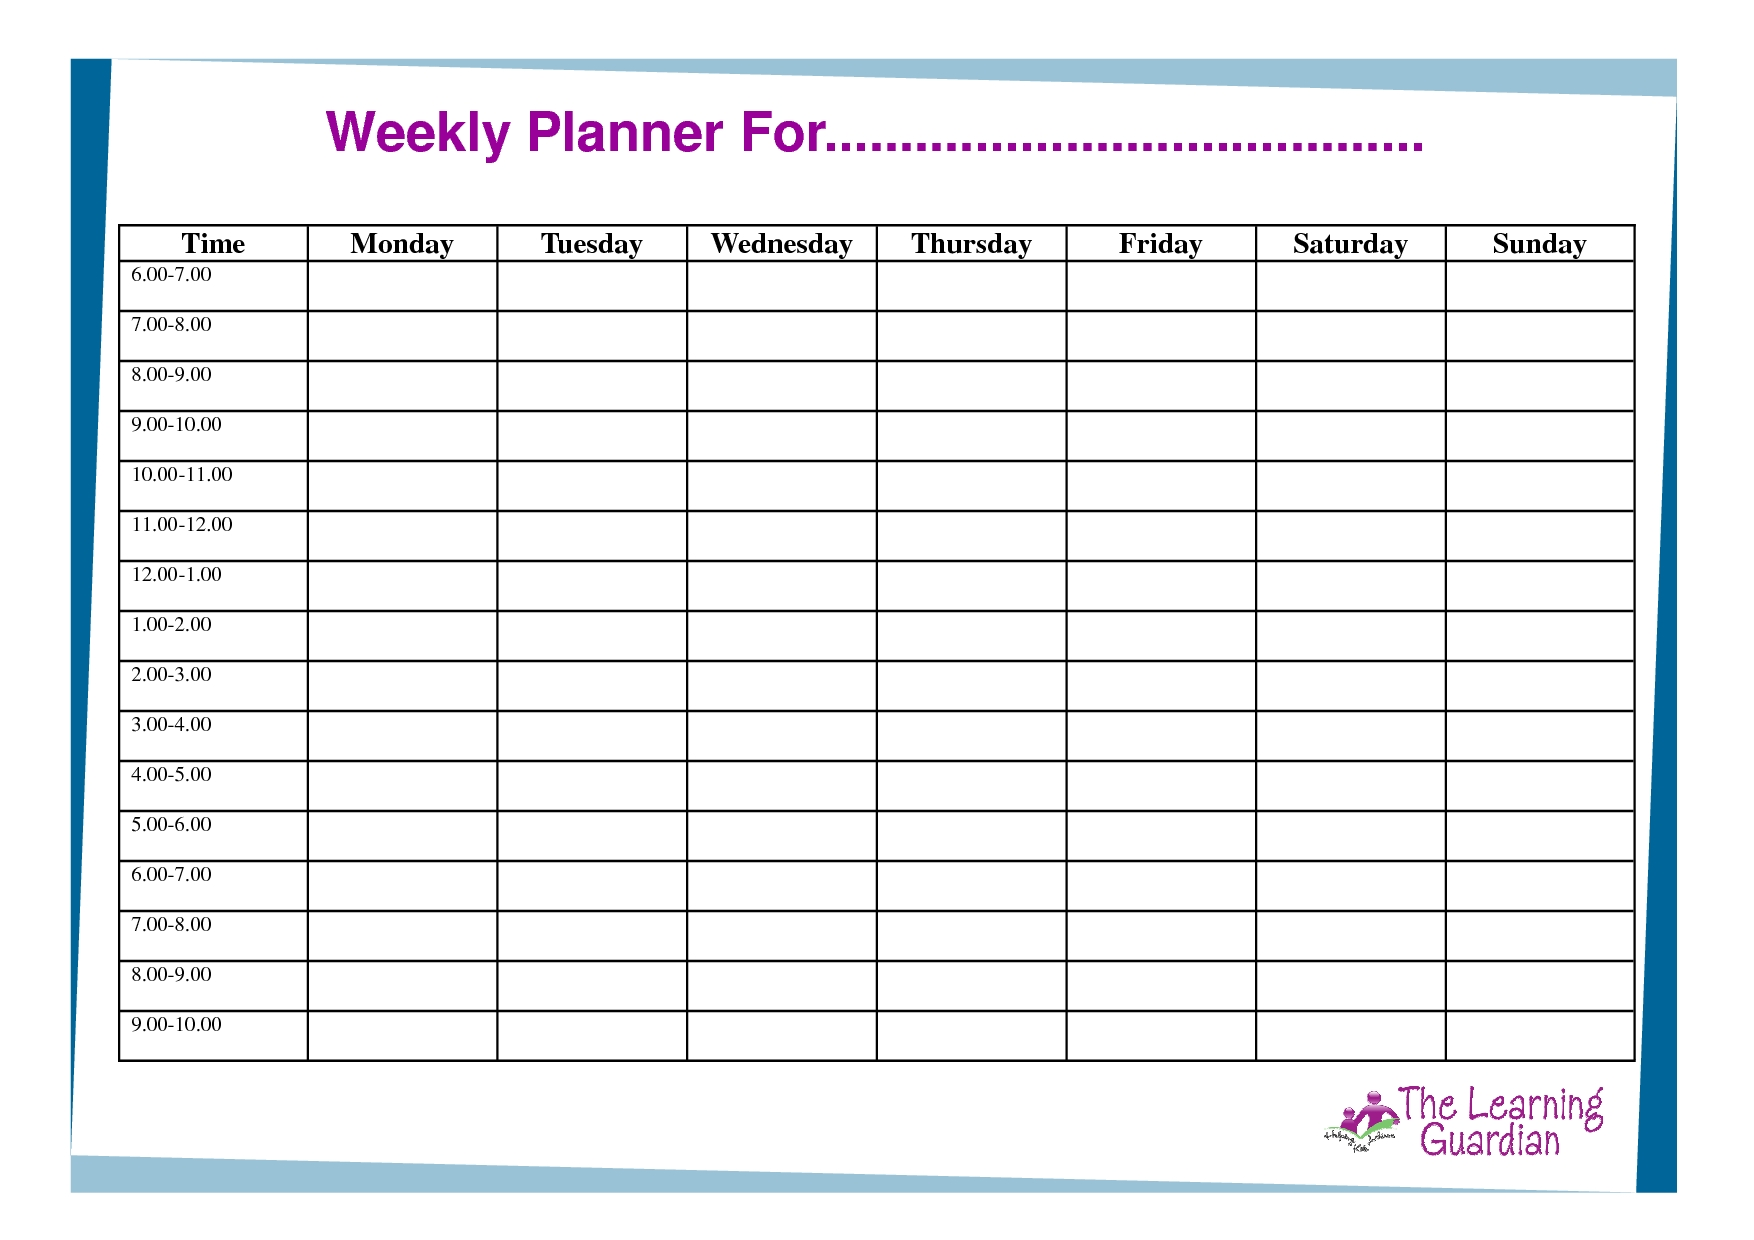 Free Printable Weekly Calendar Templates | Weekly Planner-Blank Calendar Monday To Friday